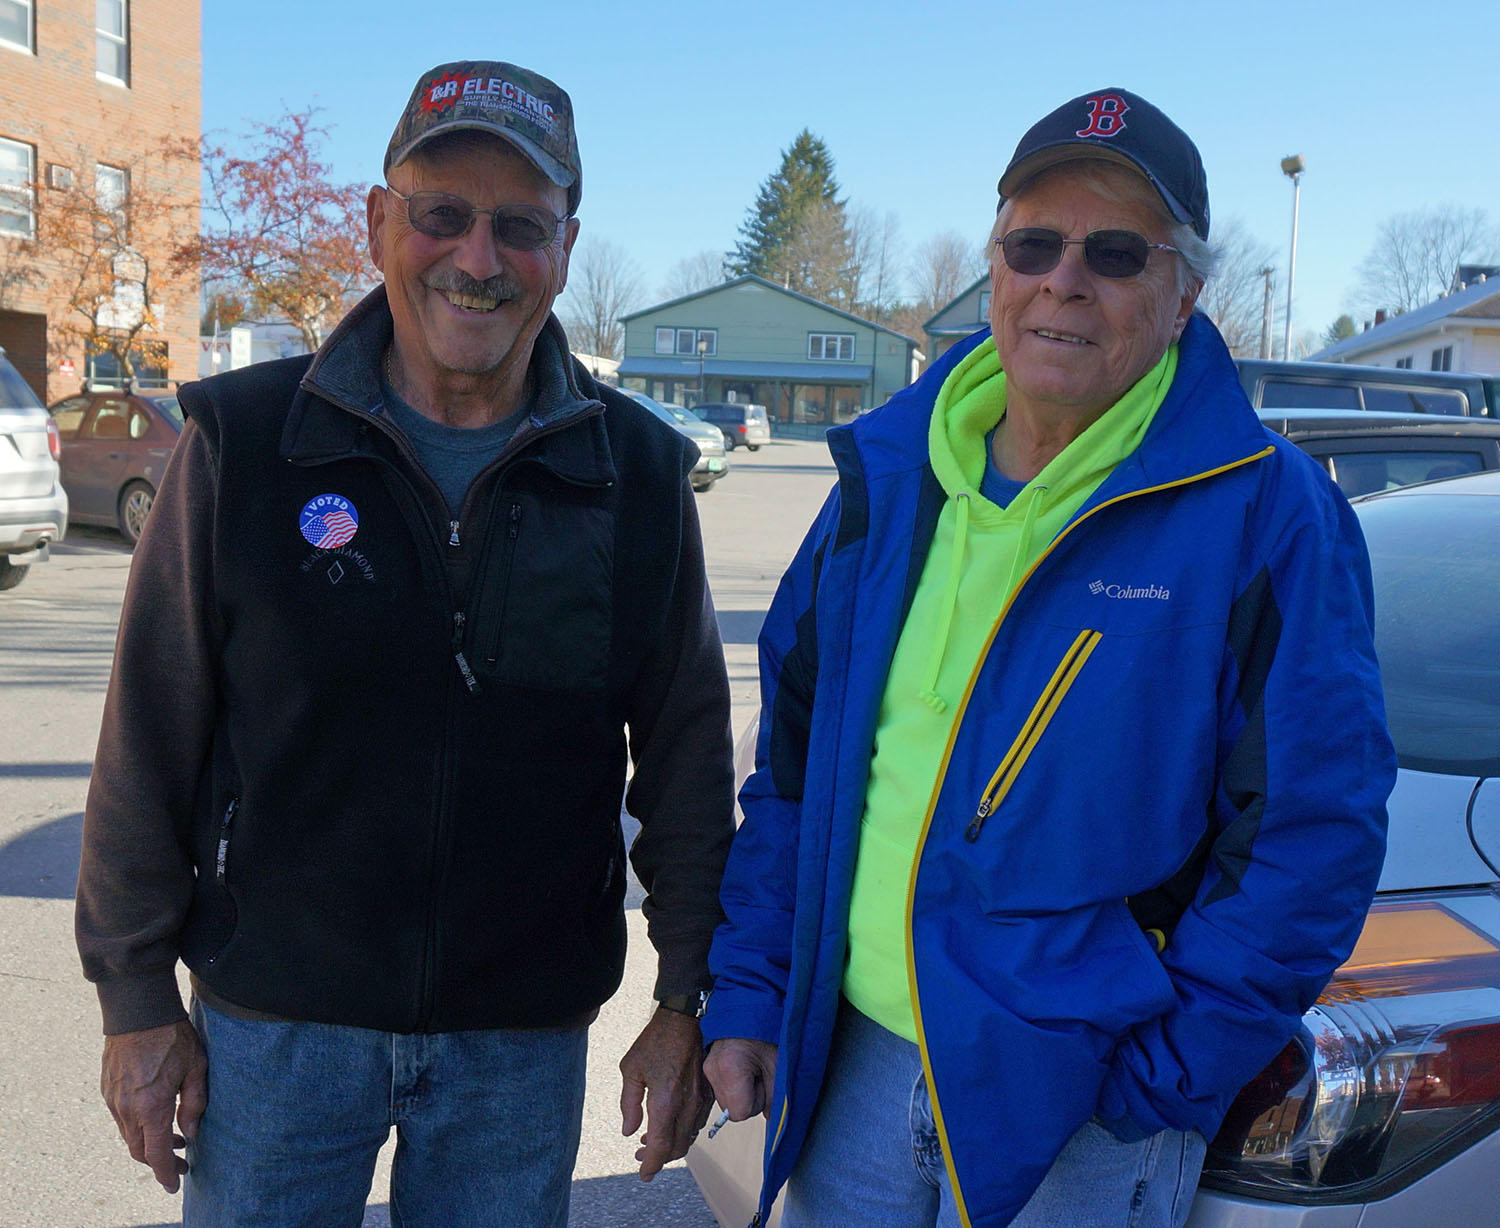 Brothers In Law Ed Lambert Left And Val Gorham Both Of Morrisville Met Up To Chat In The Parking Lot After Voting